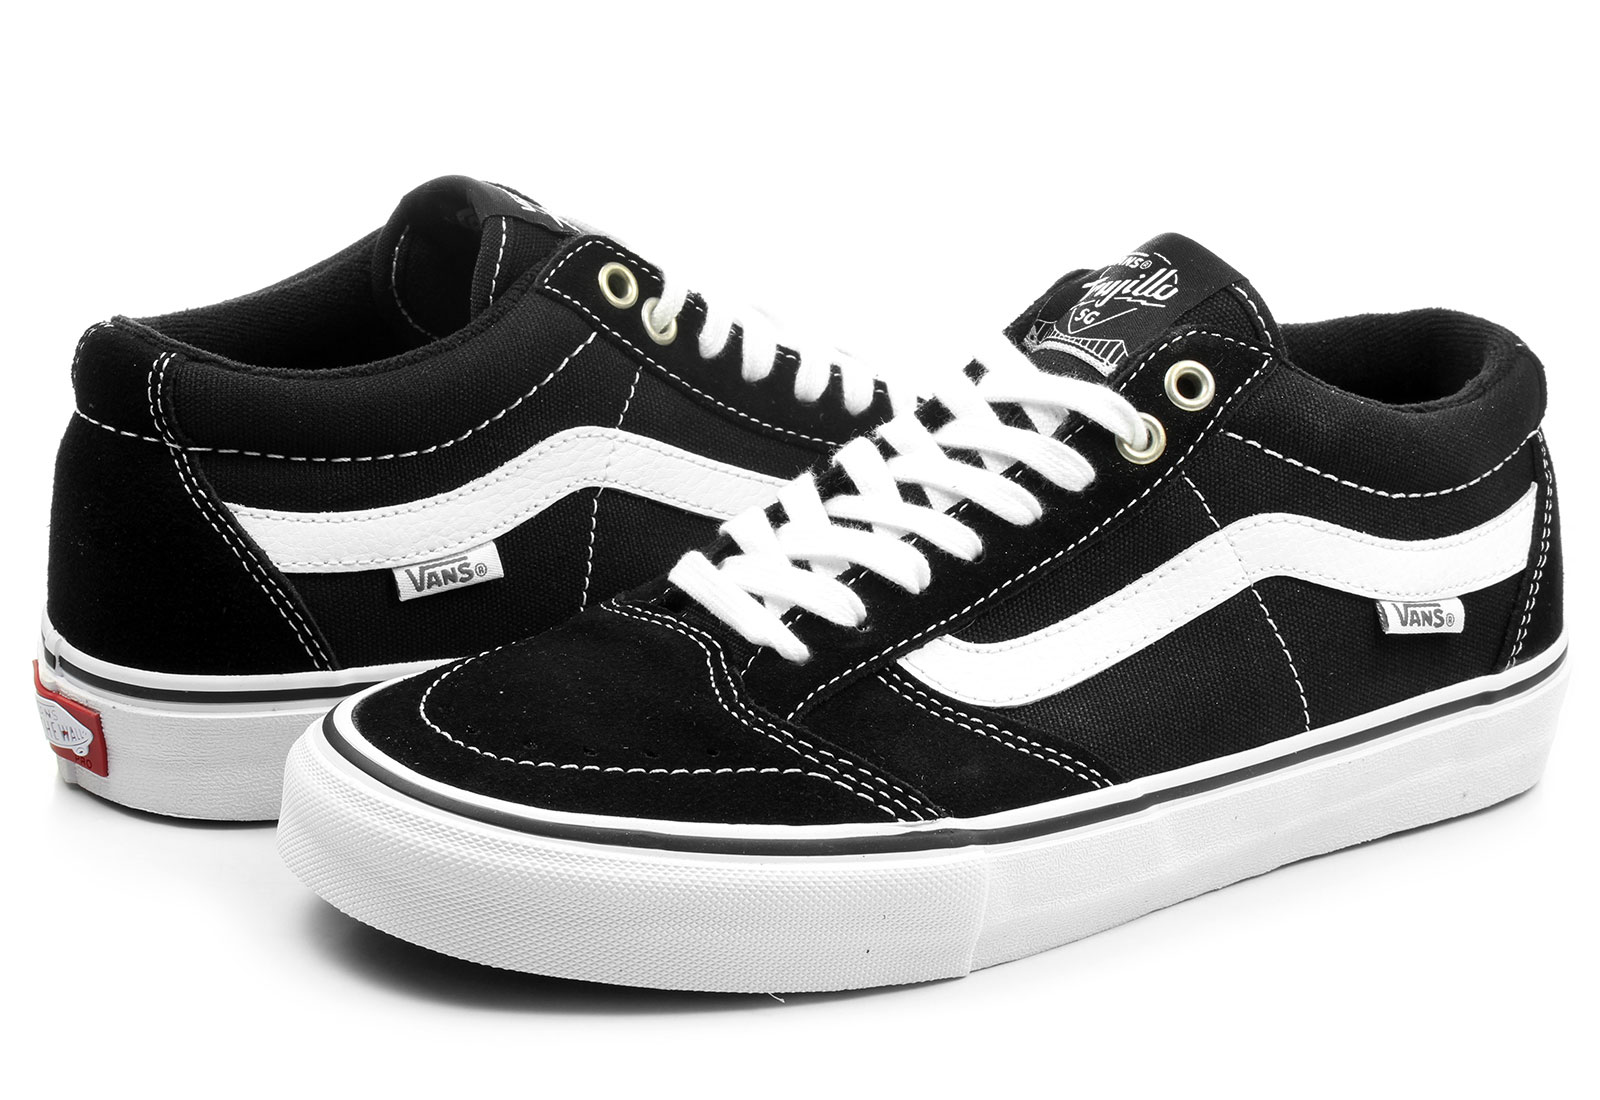 Where To Find Vans Shoes In Singapore